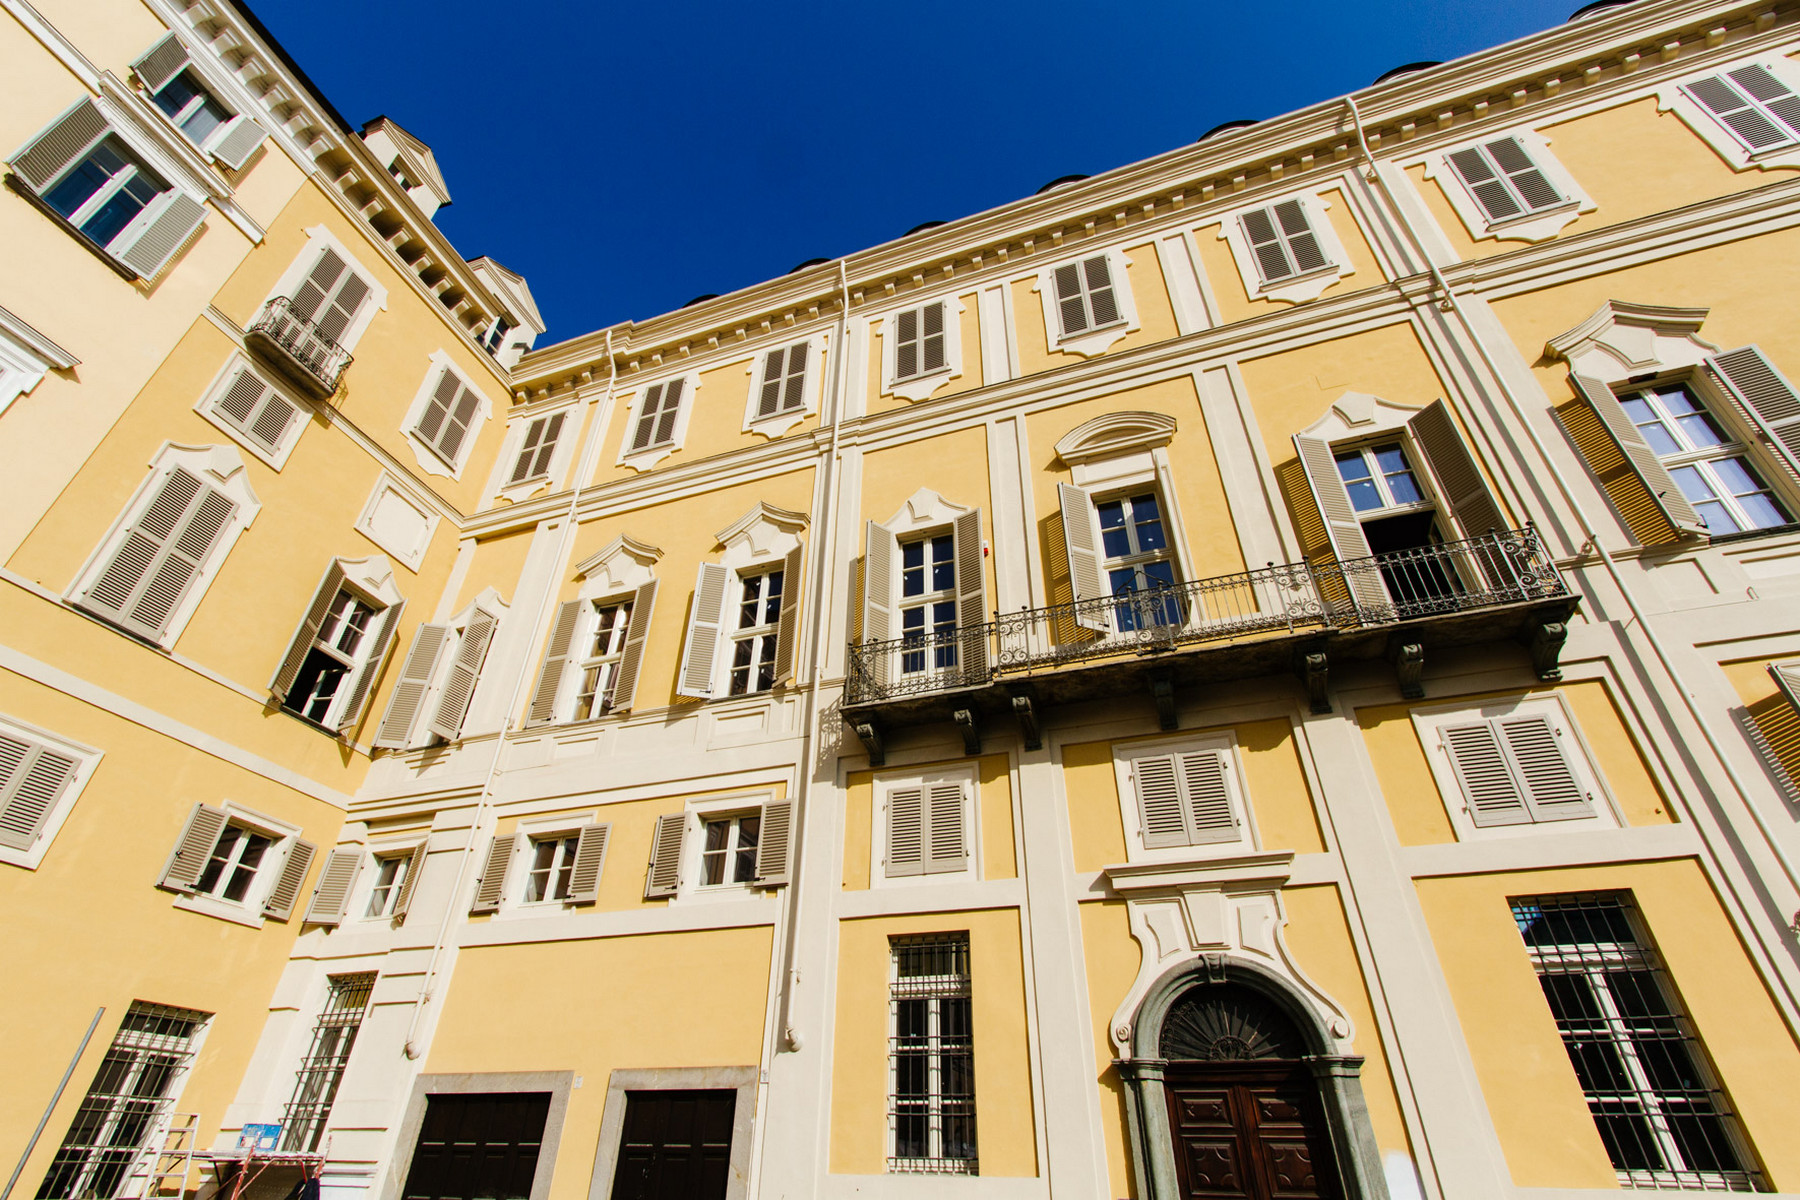 Additional photo for property listing at Splendid Baroque architecture apartment in historic center Piazza Savoia Torino, Turin 10122 Italia